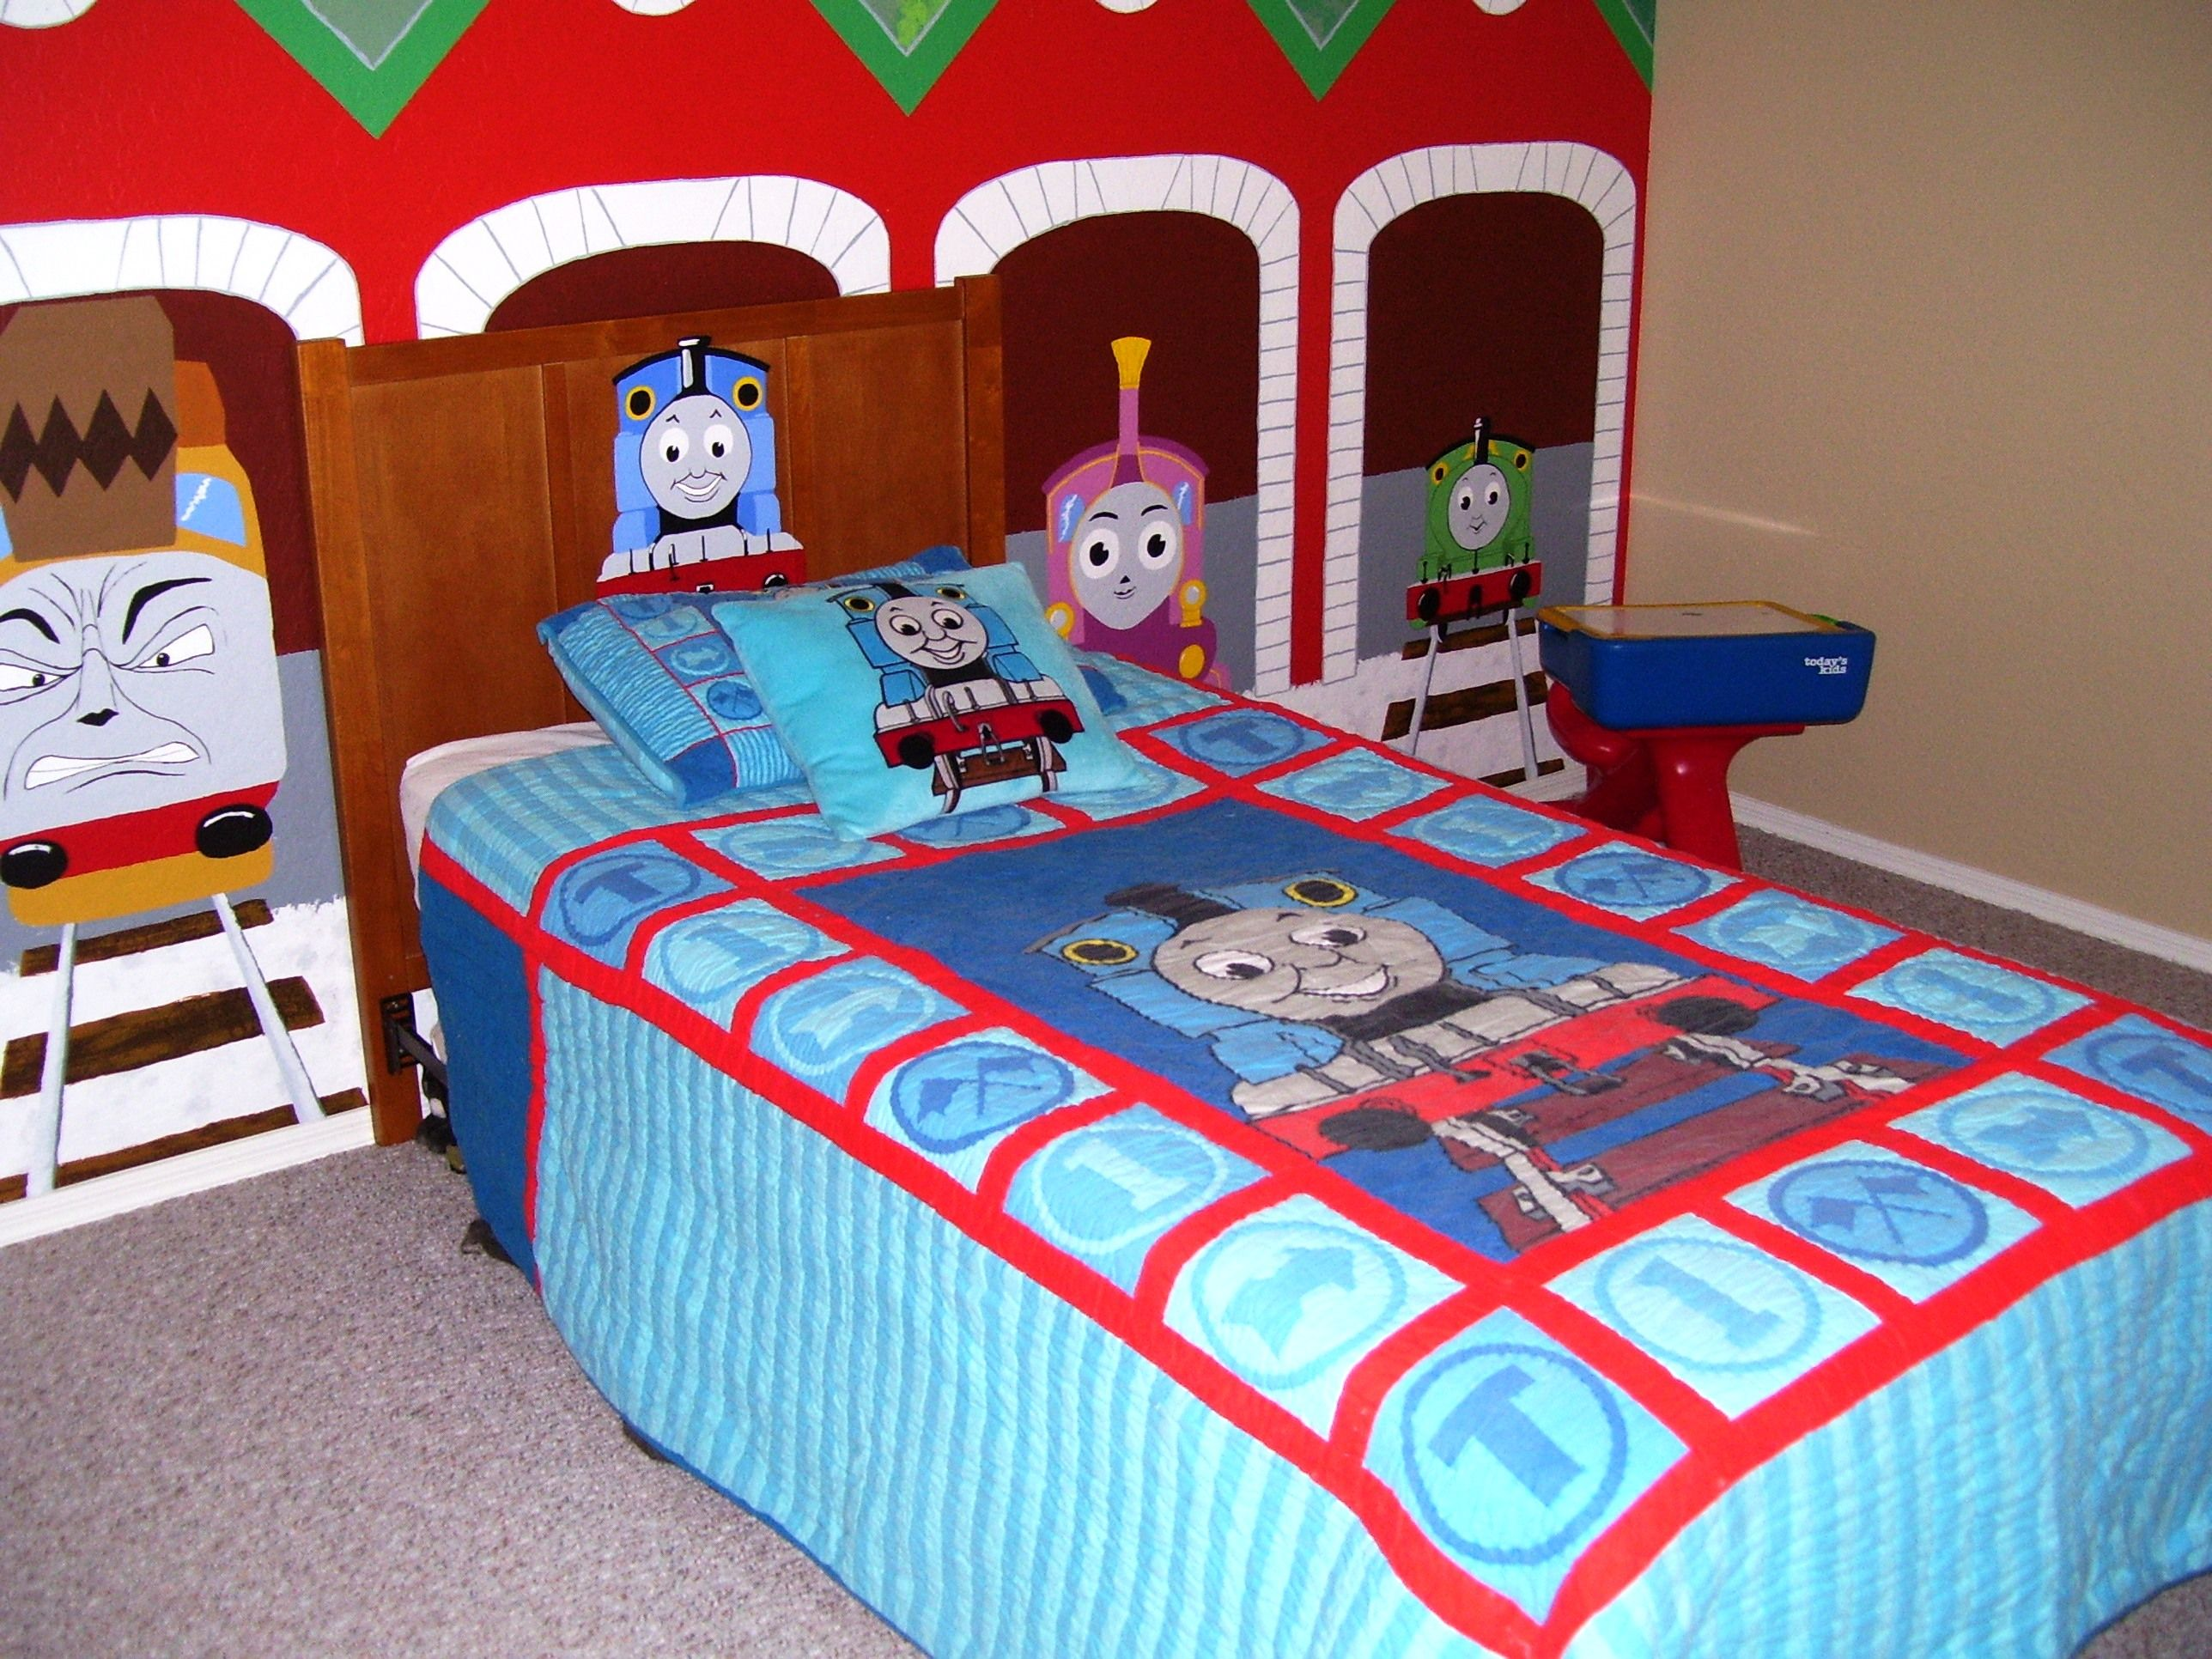 Thomas The Train Bedroom With Mural Murals Thomas The Train And Train Room